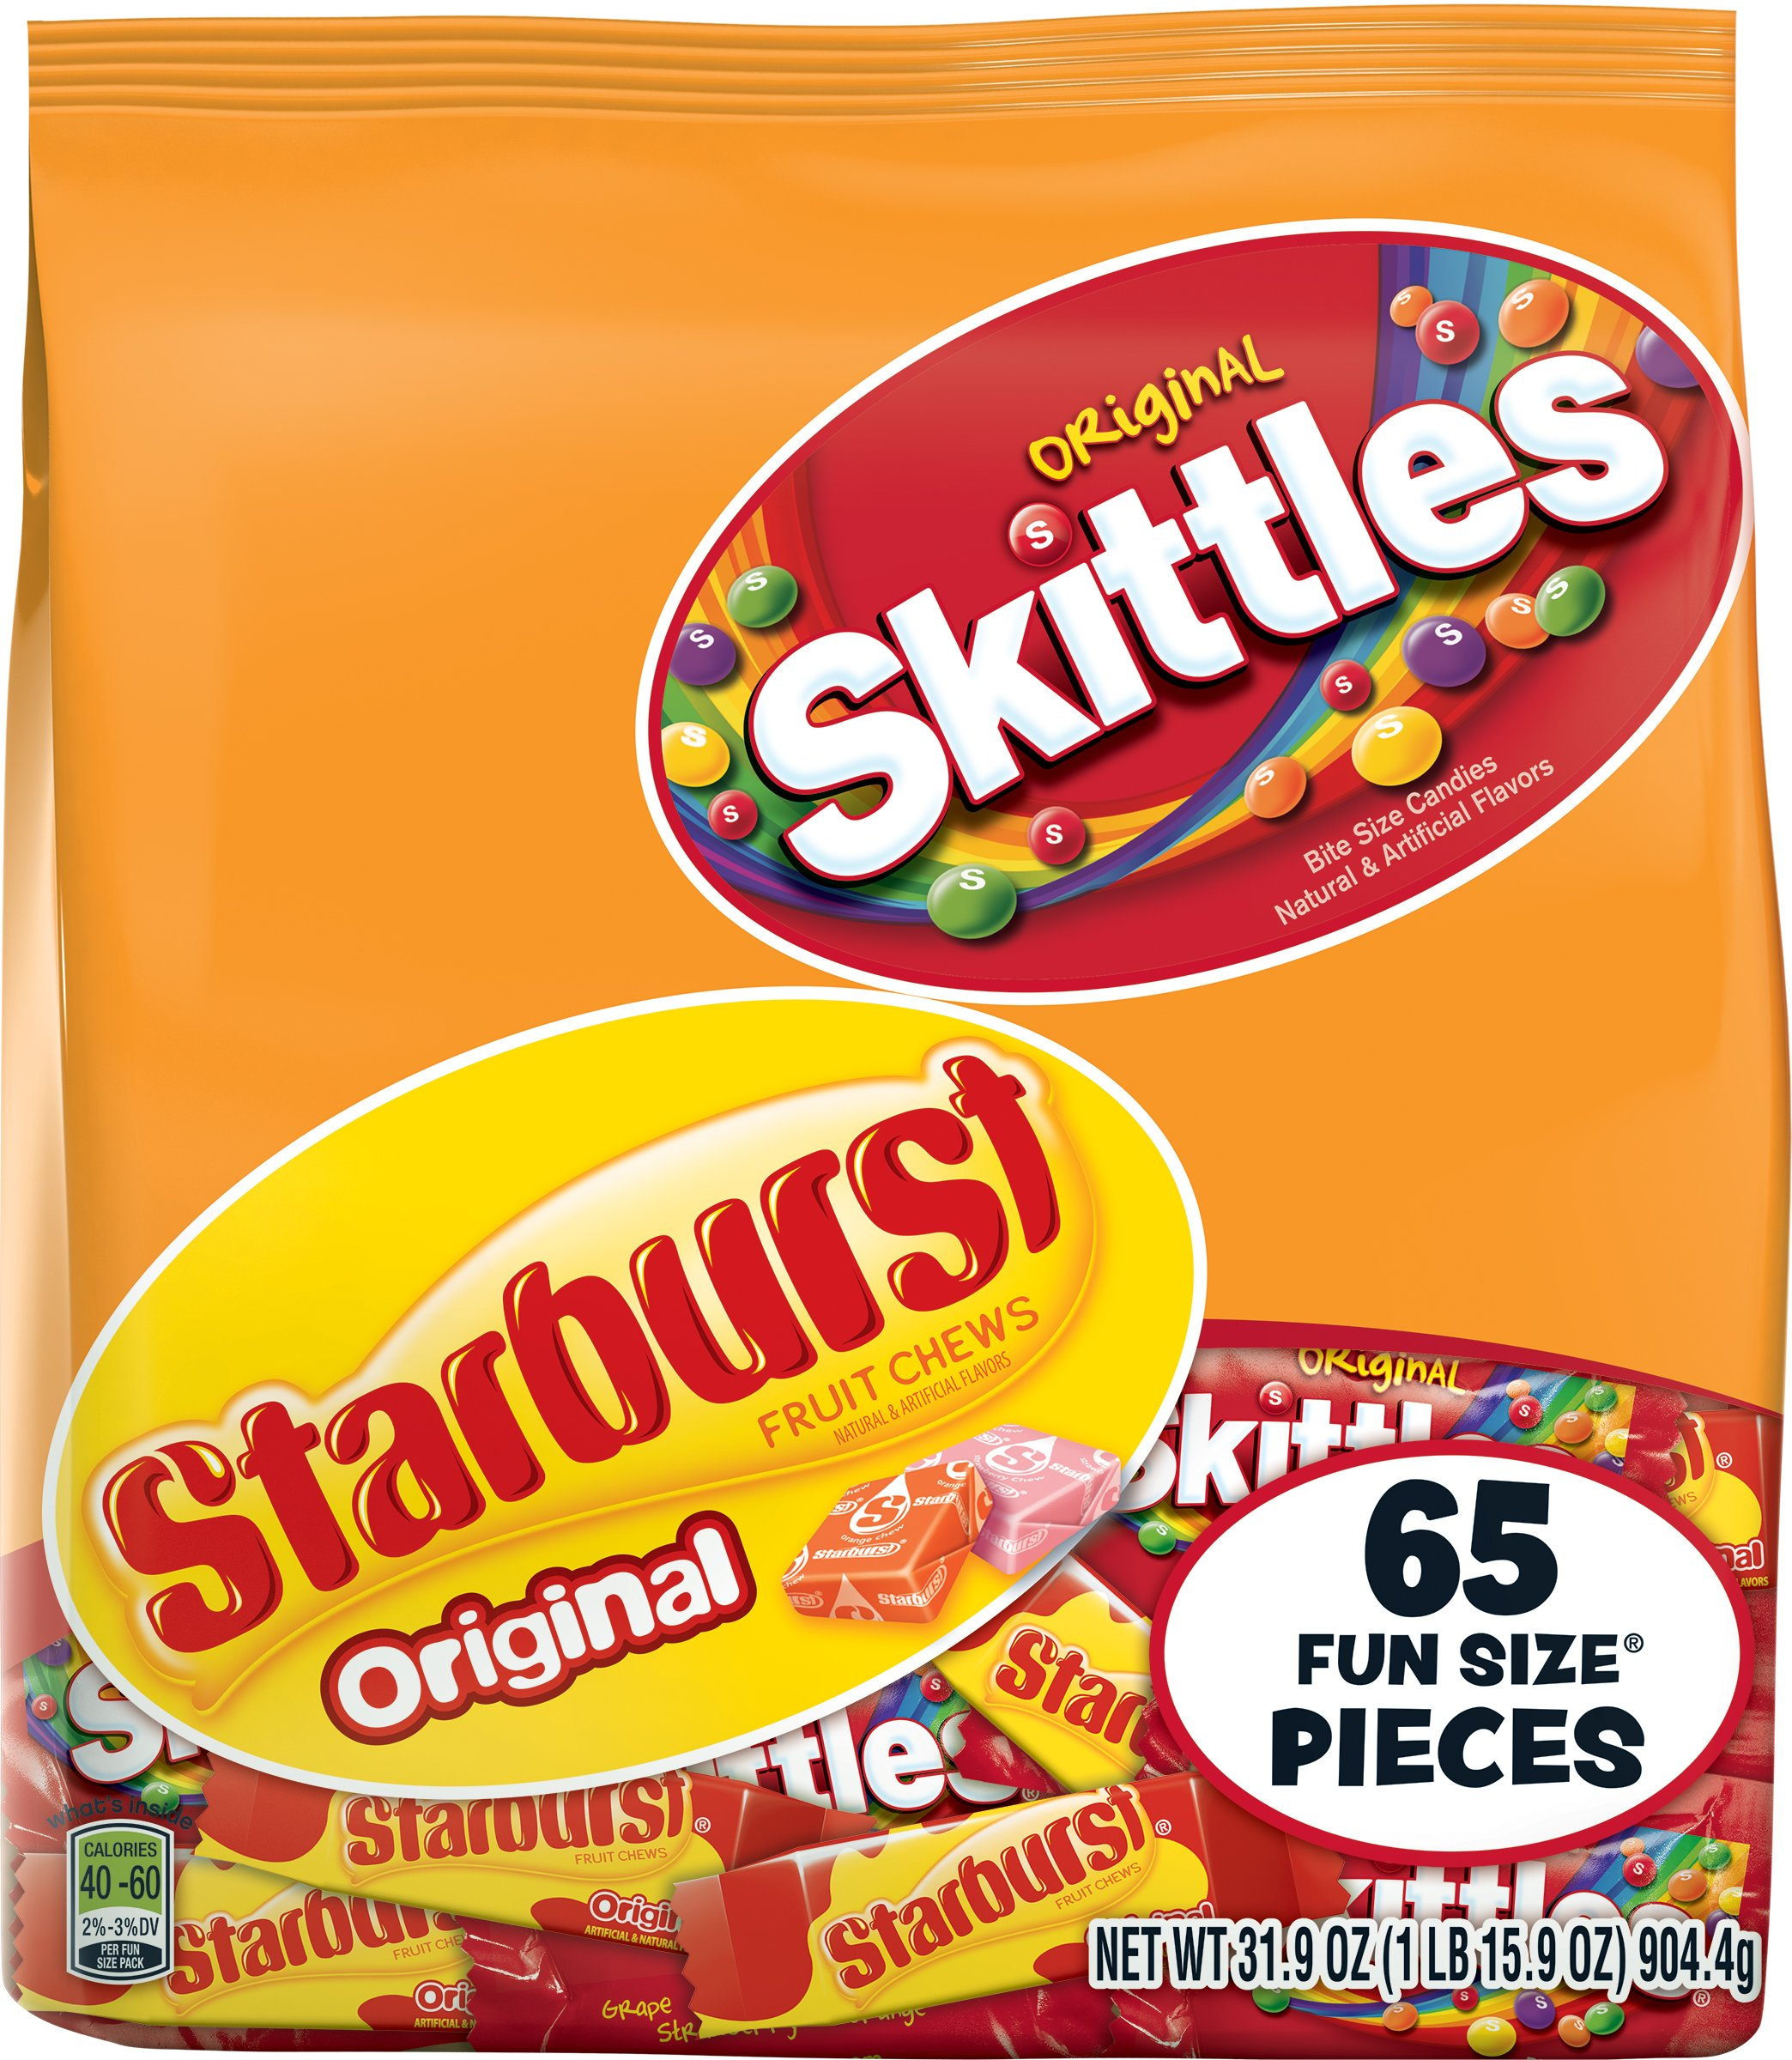 Skittles and Starburst Original Candy Bag, 65 Fun Size Pieces, 31.9 ounces